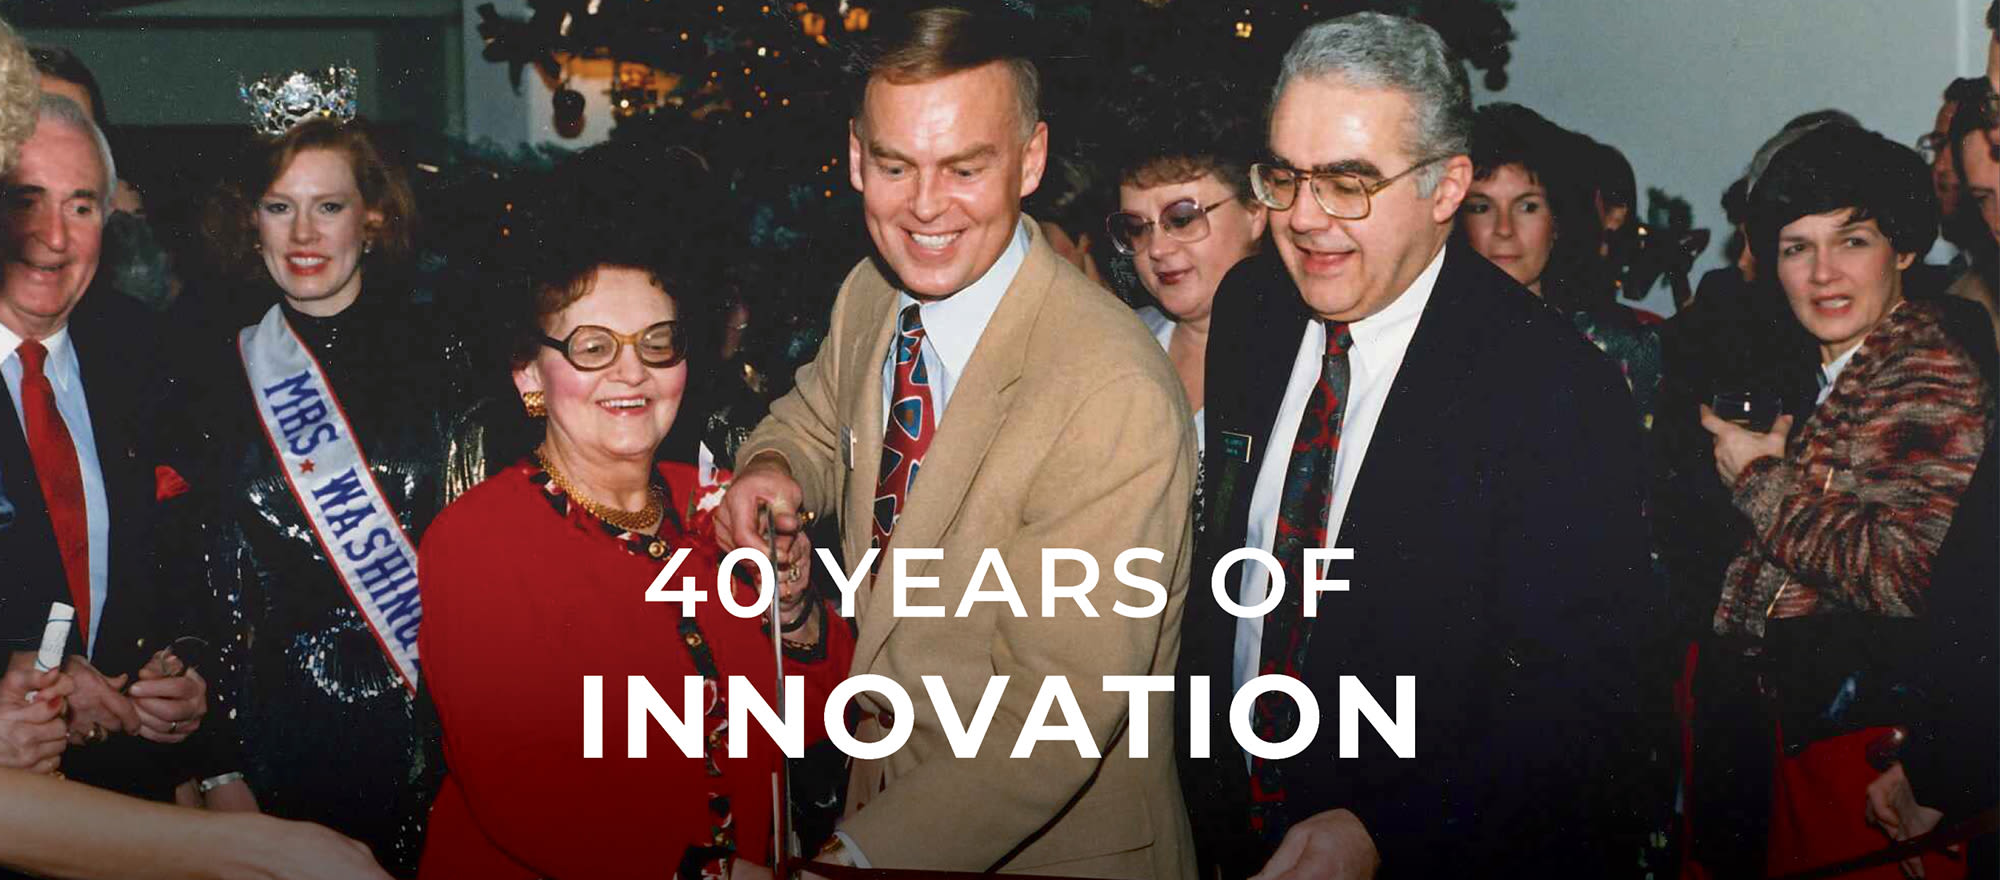 40 Years of Innovation